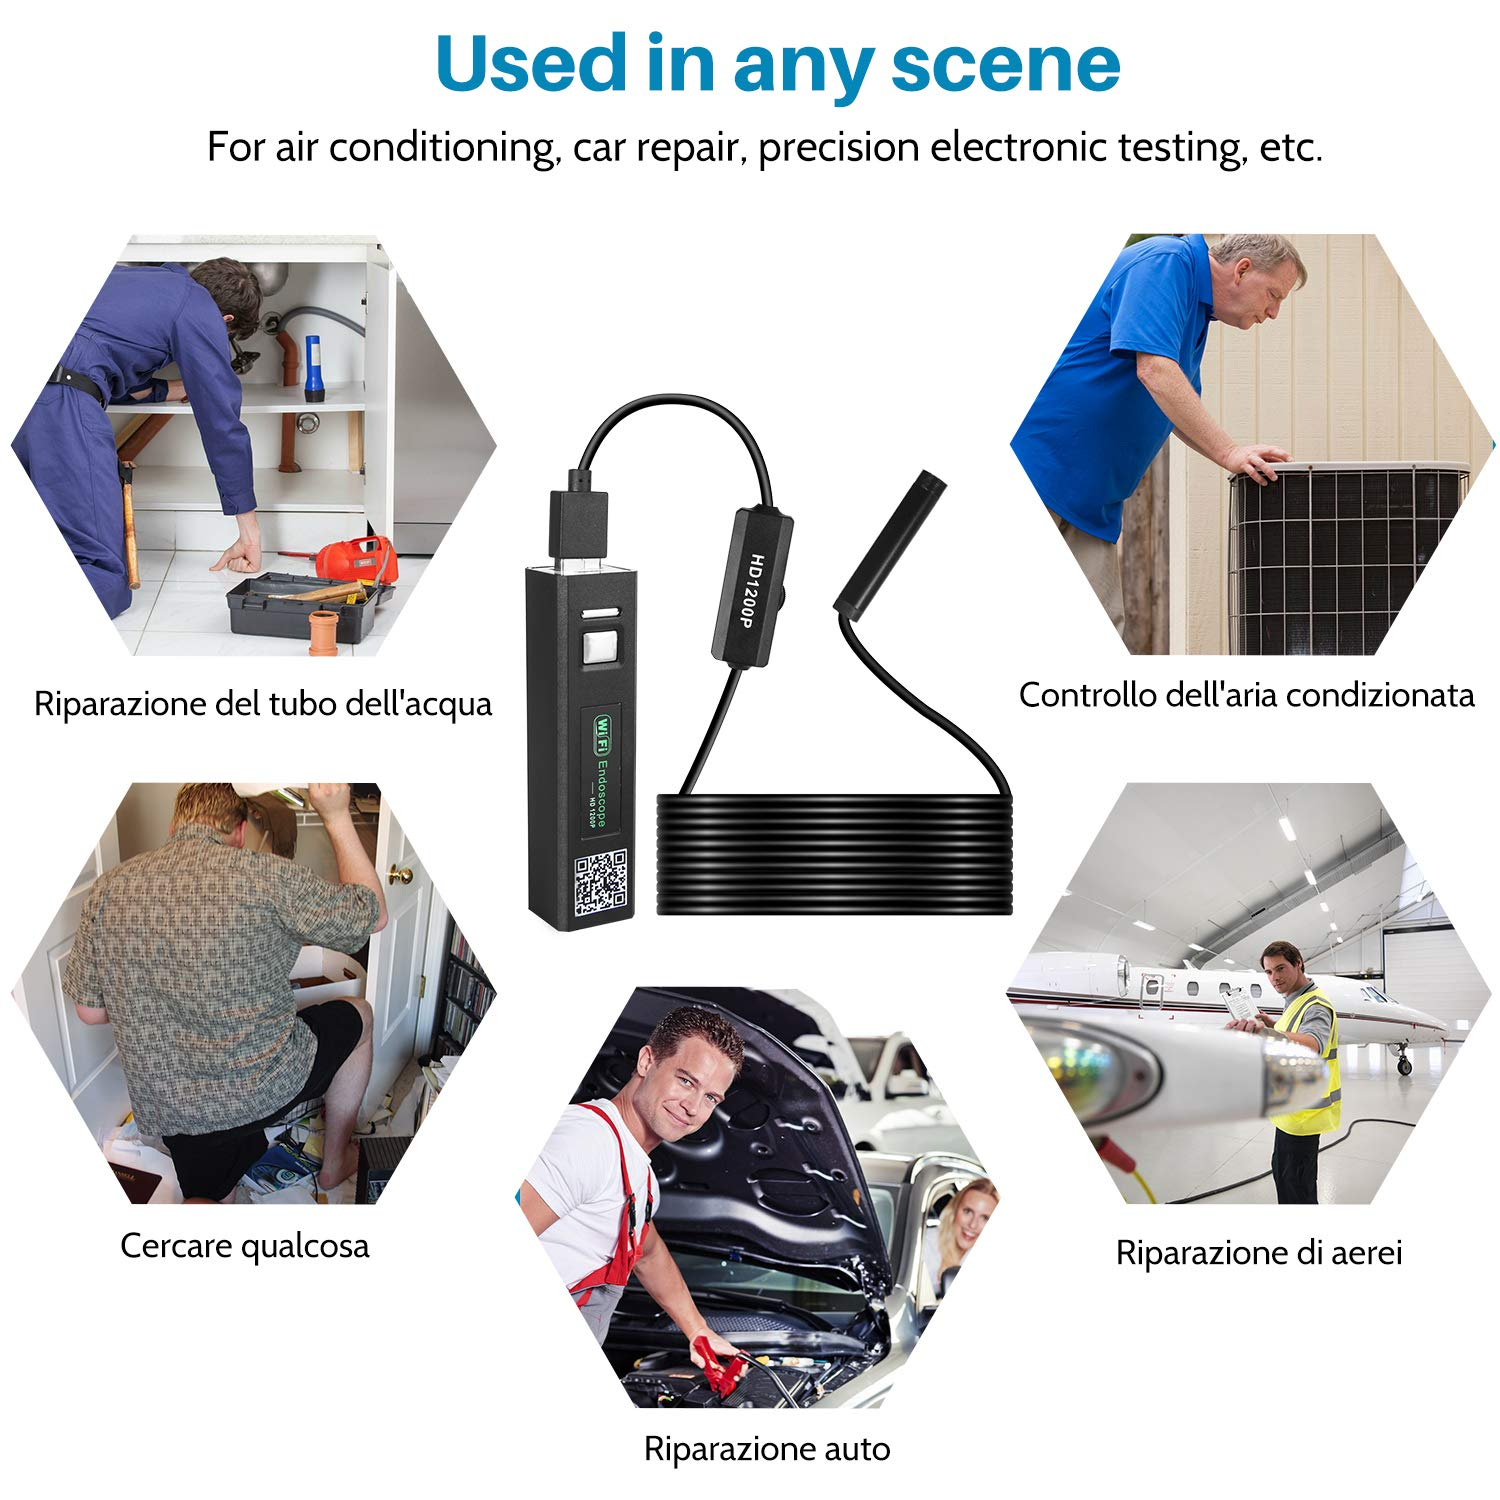 Tablet IP68 Waterproof 5 Meters Semi-Rigid Cable for Android and iOS Windows Mac USB Wireless WiFi 2.0 Megapixel 1200P HD Borescope with 8 LED Lights ieGeek WiFi Endoscope